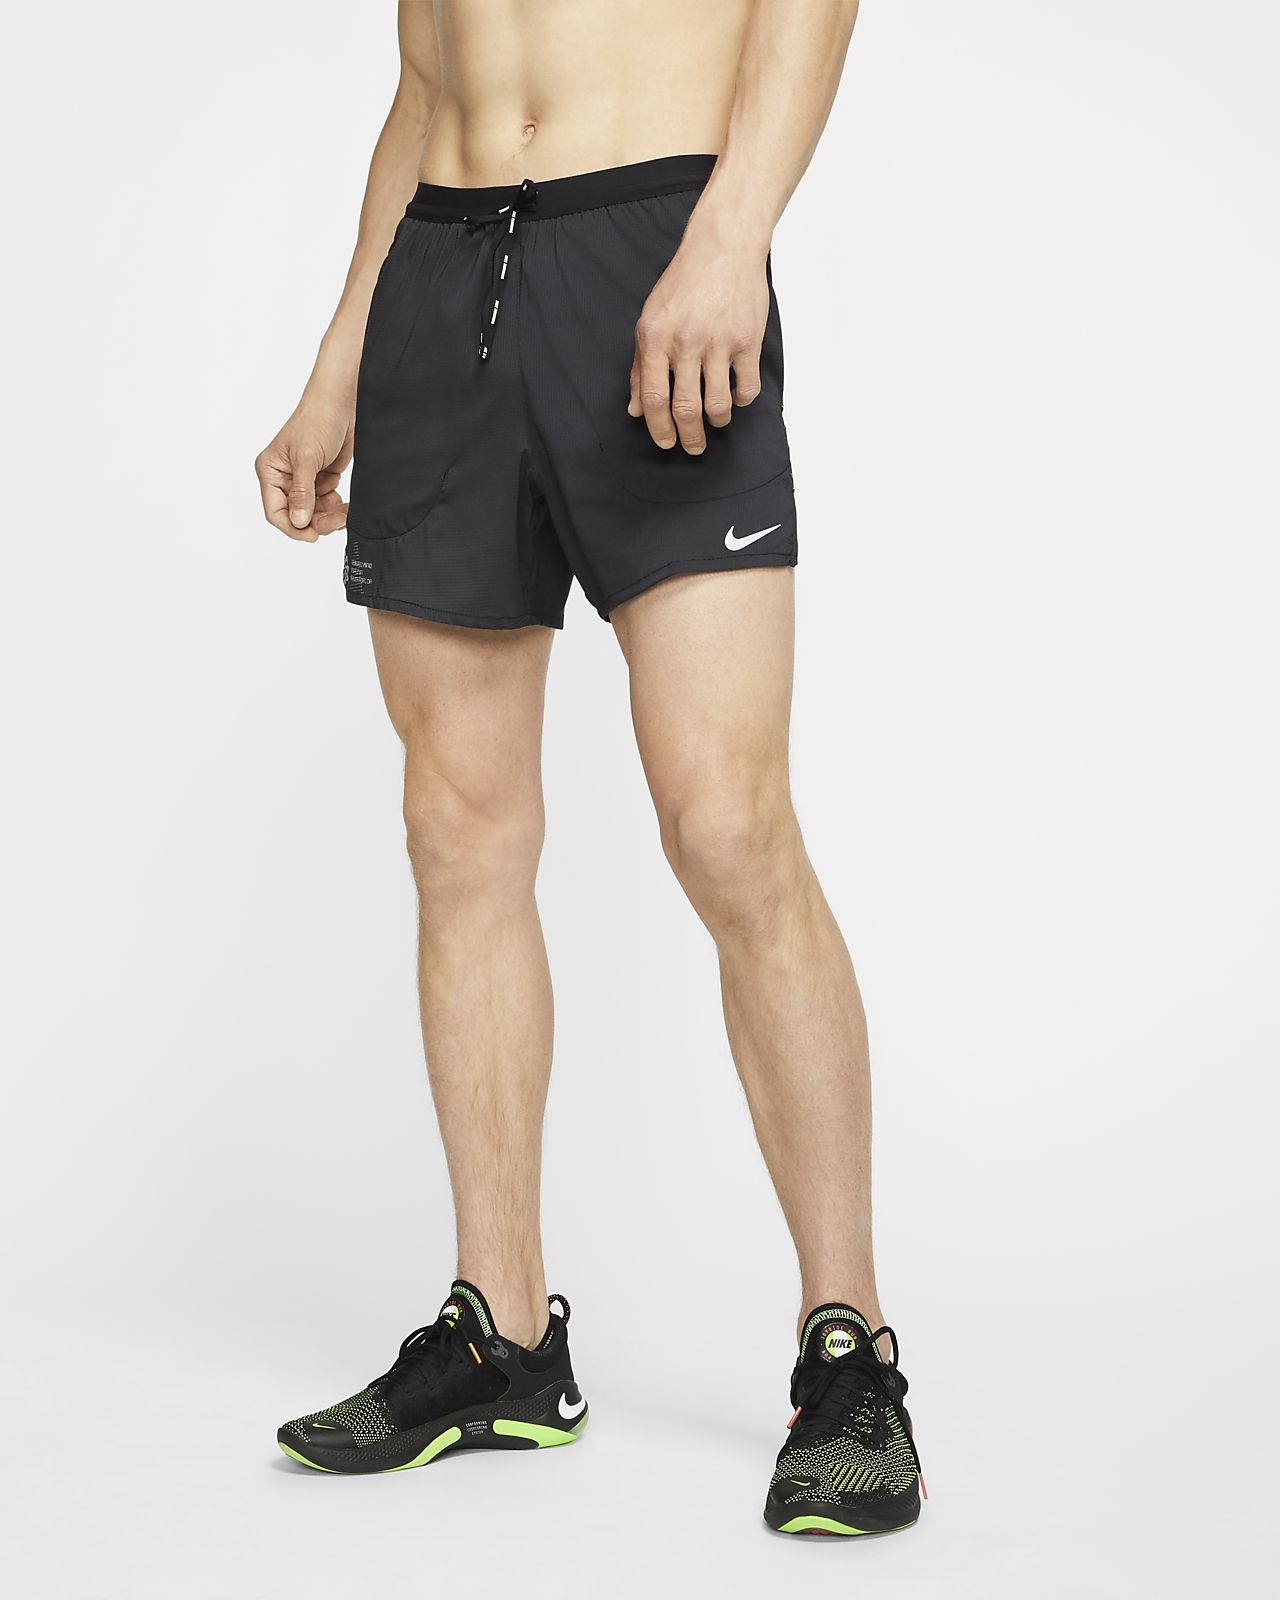 Nike Flex Stride Future Fast Men's 13cm (approx.) Brief Lined Running Shorts